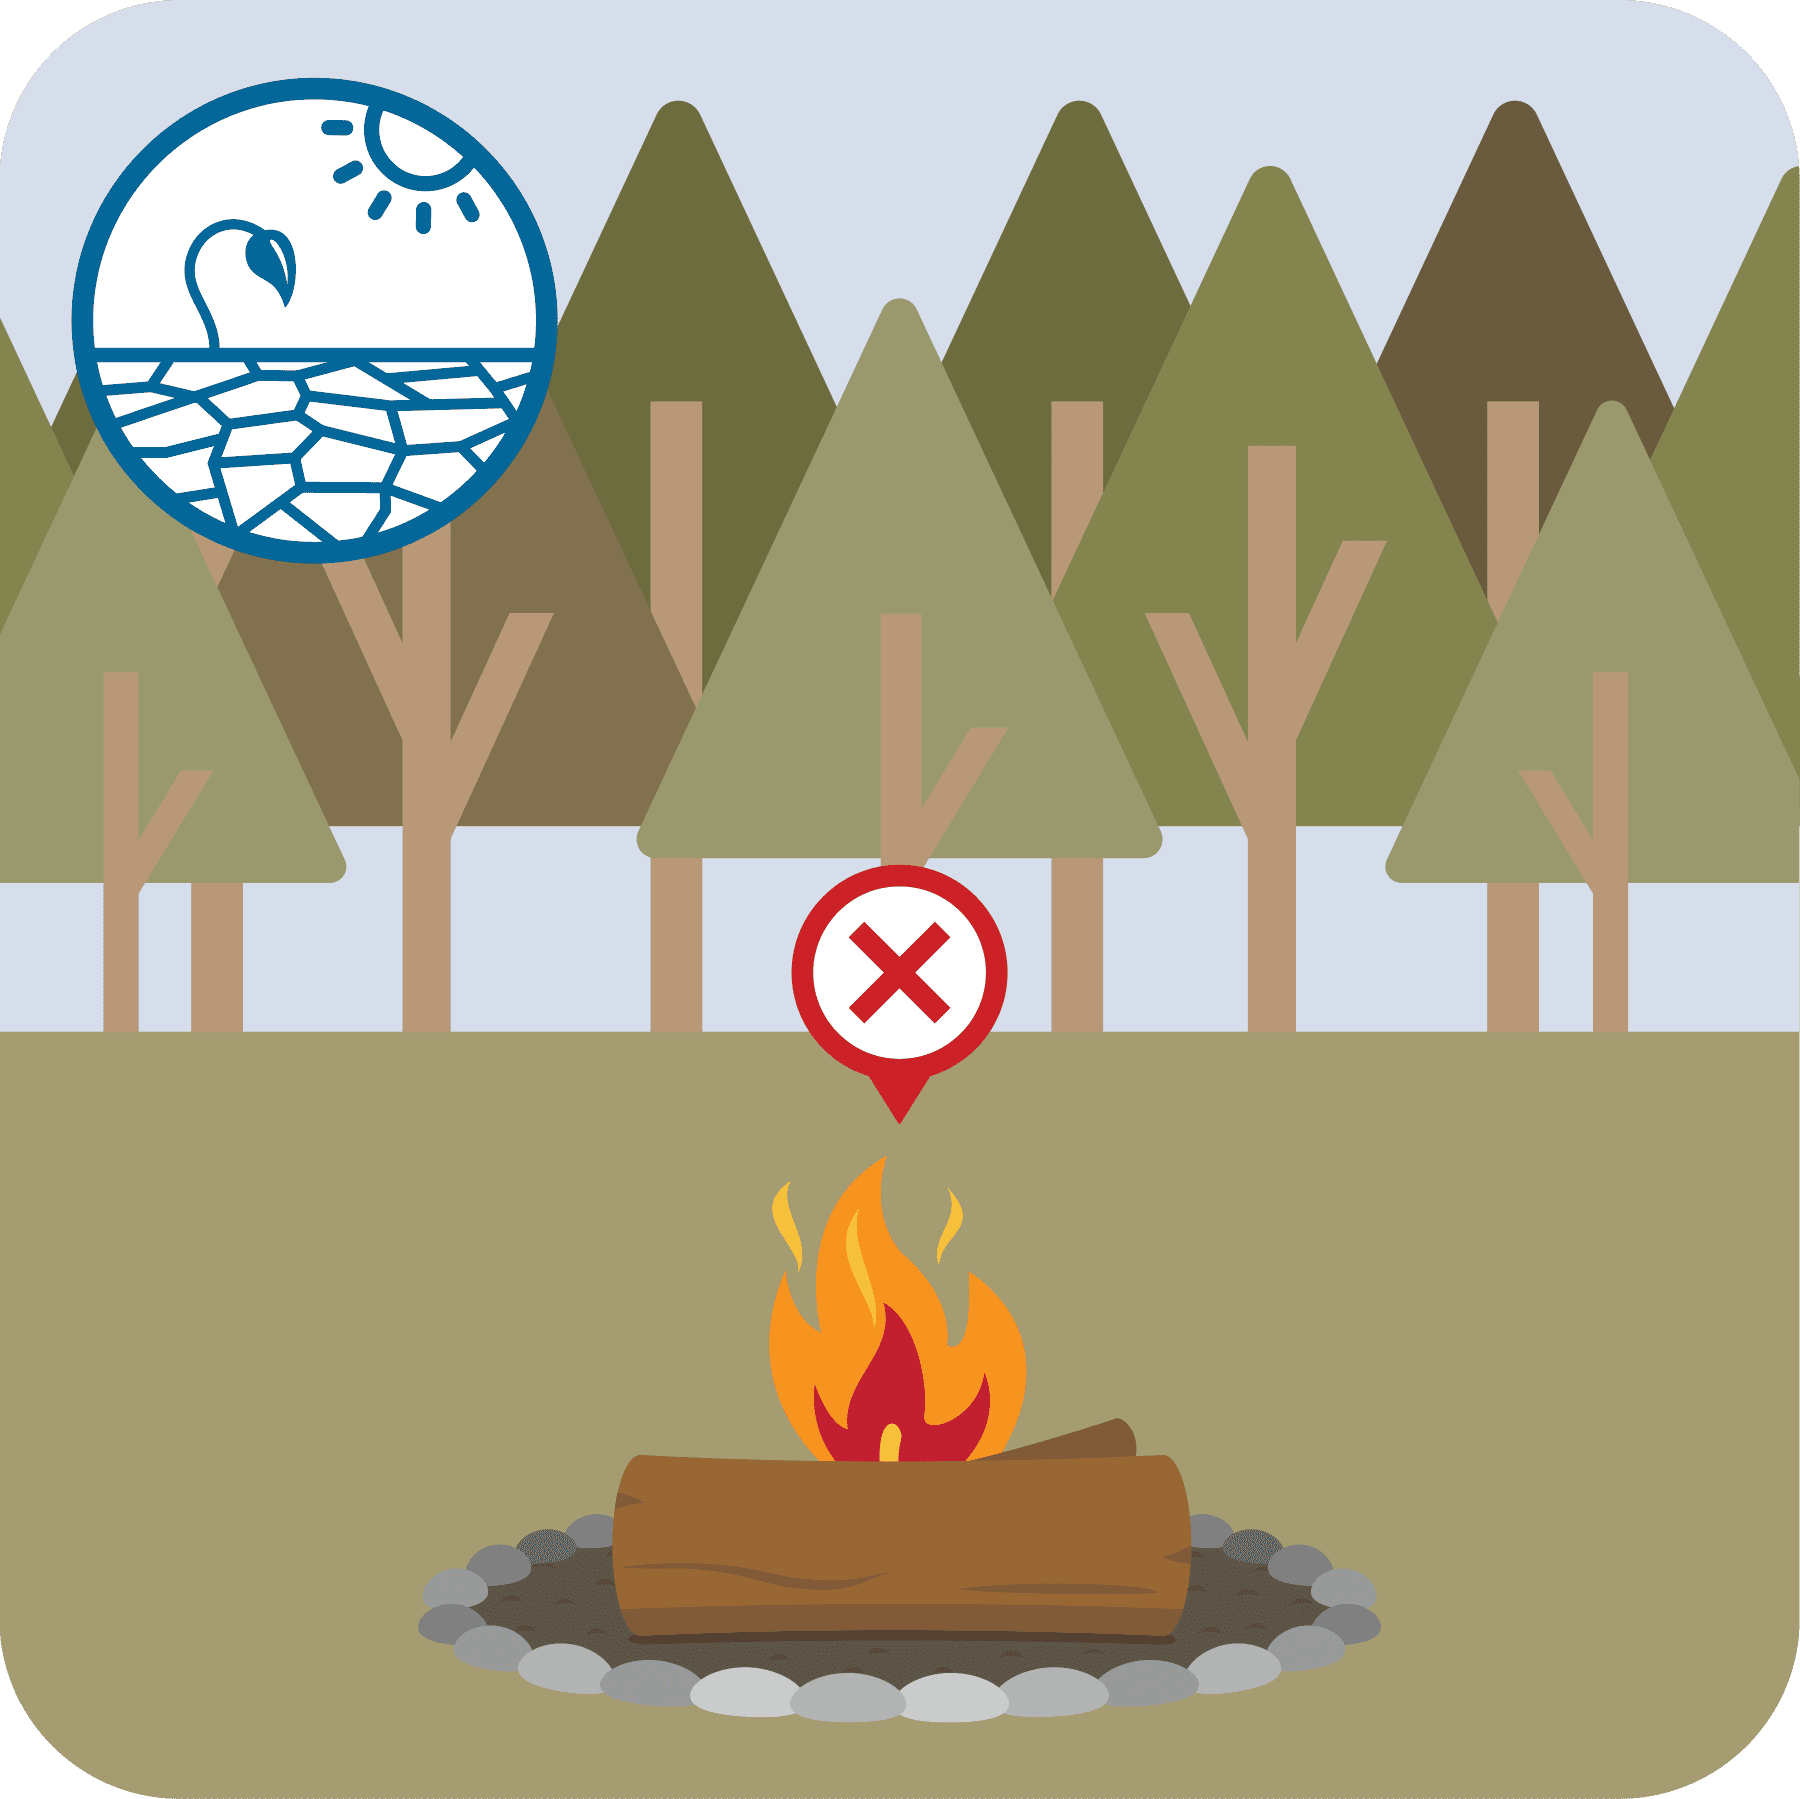 A campfire during drought conditions with a red X over it.